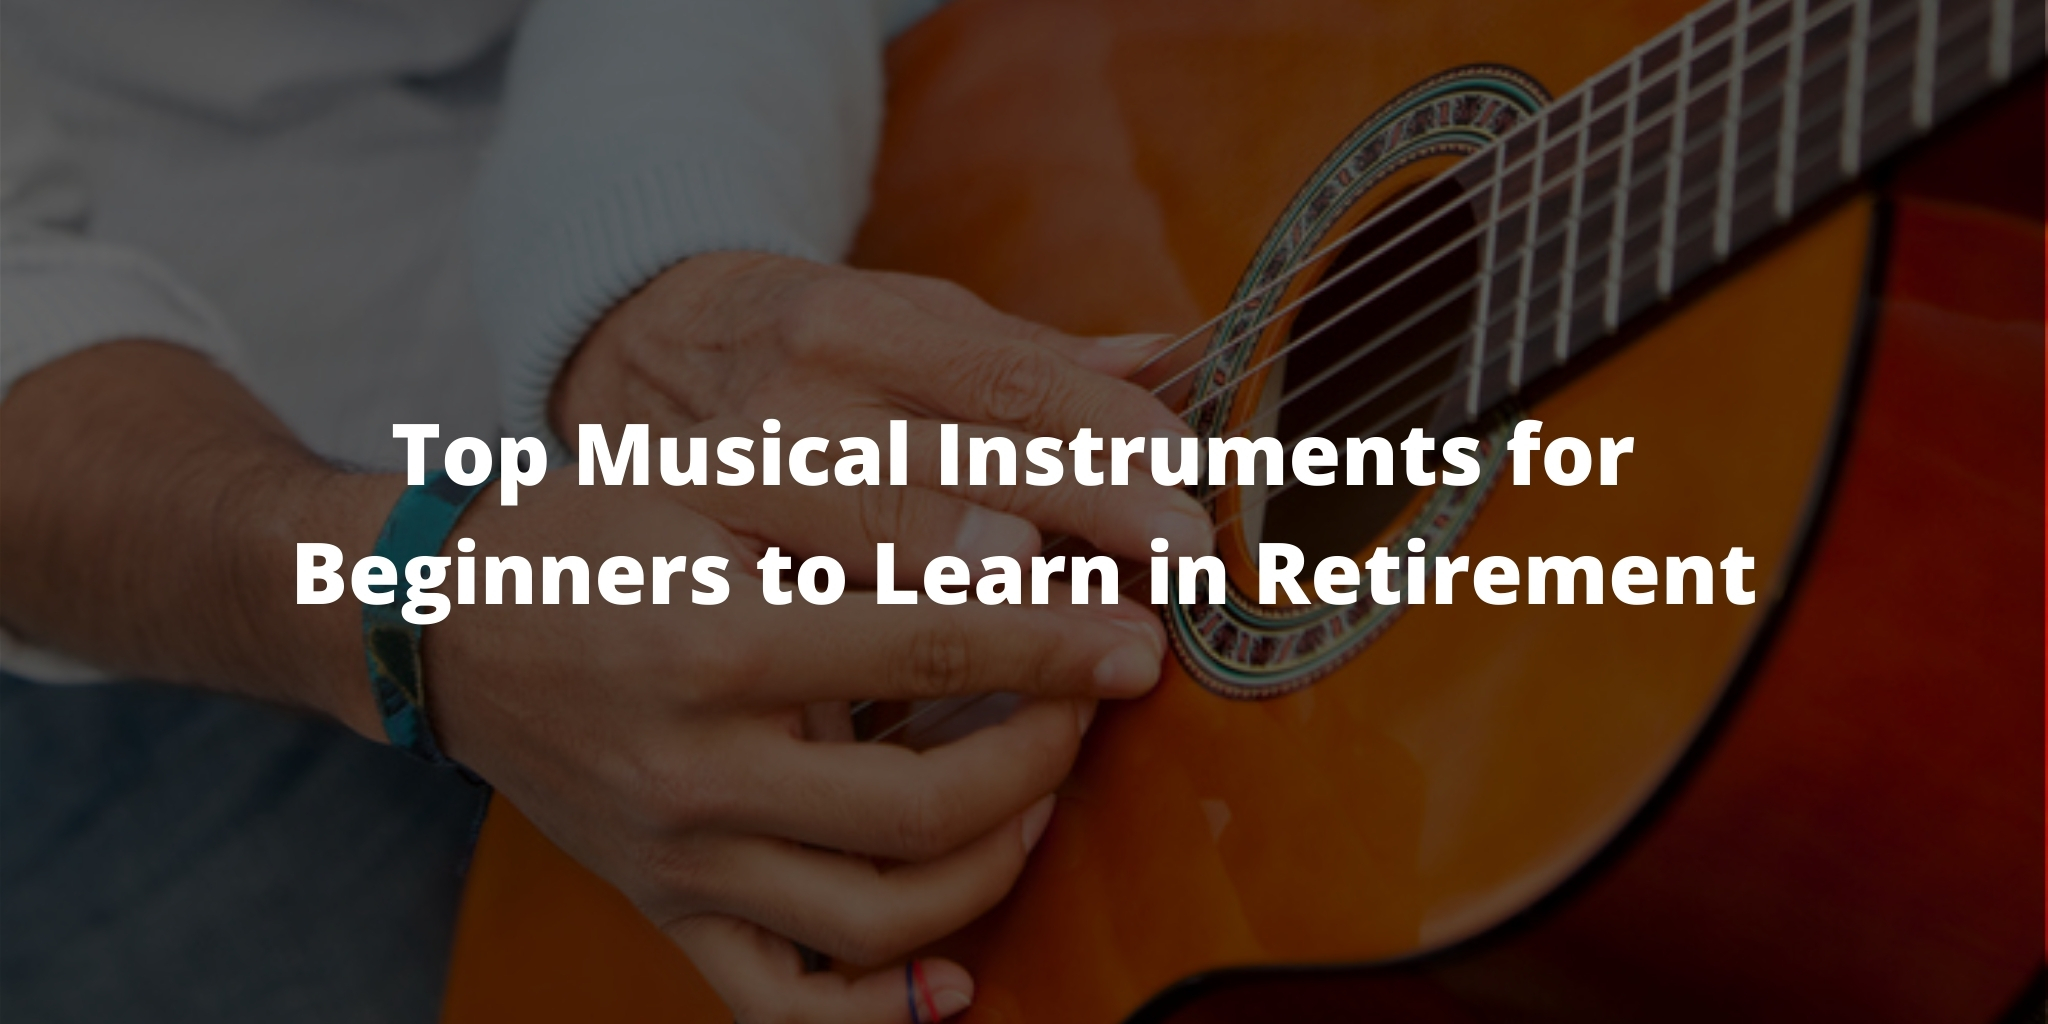 Top Musical Instruments for Beginners to Learn in Retirement